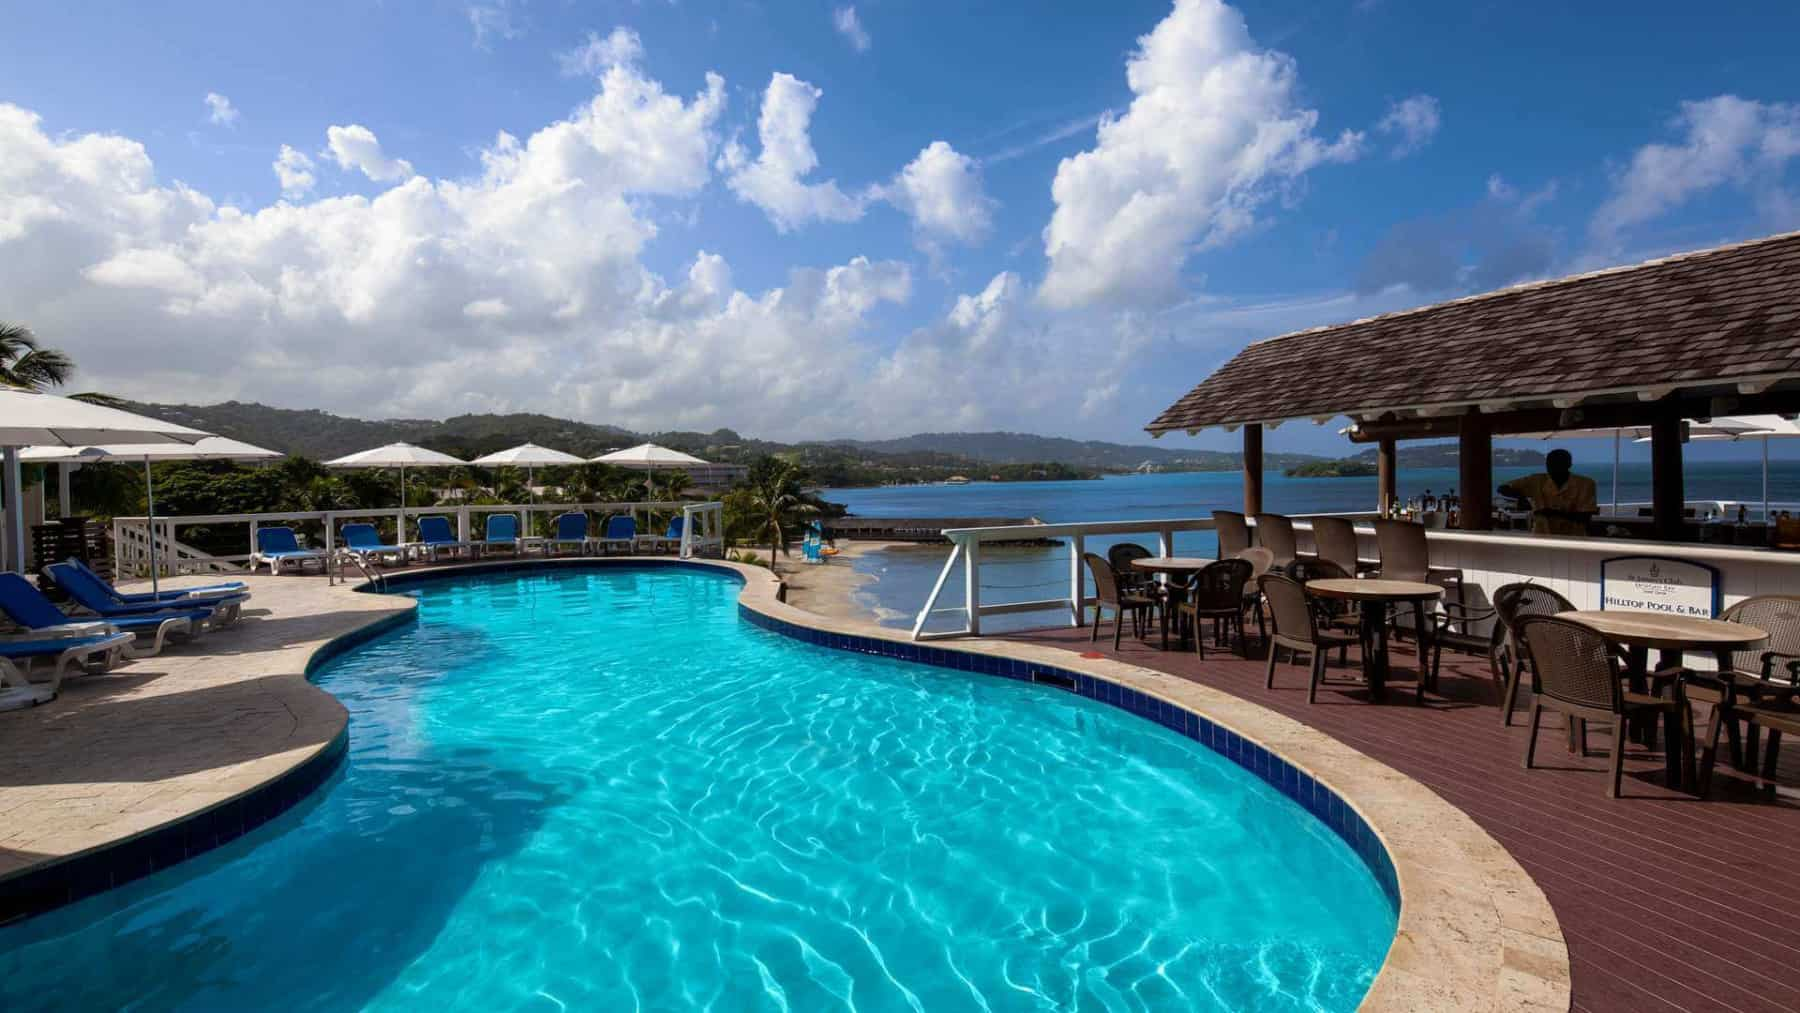 Weddings Abroad Saint Lucia Meon Valley Travel-8